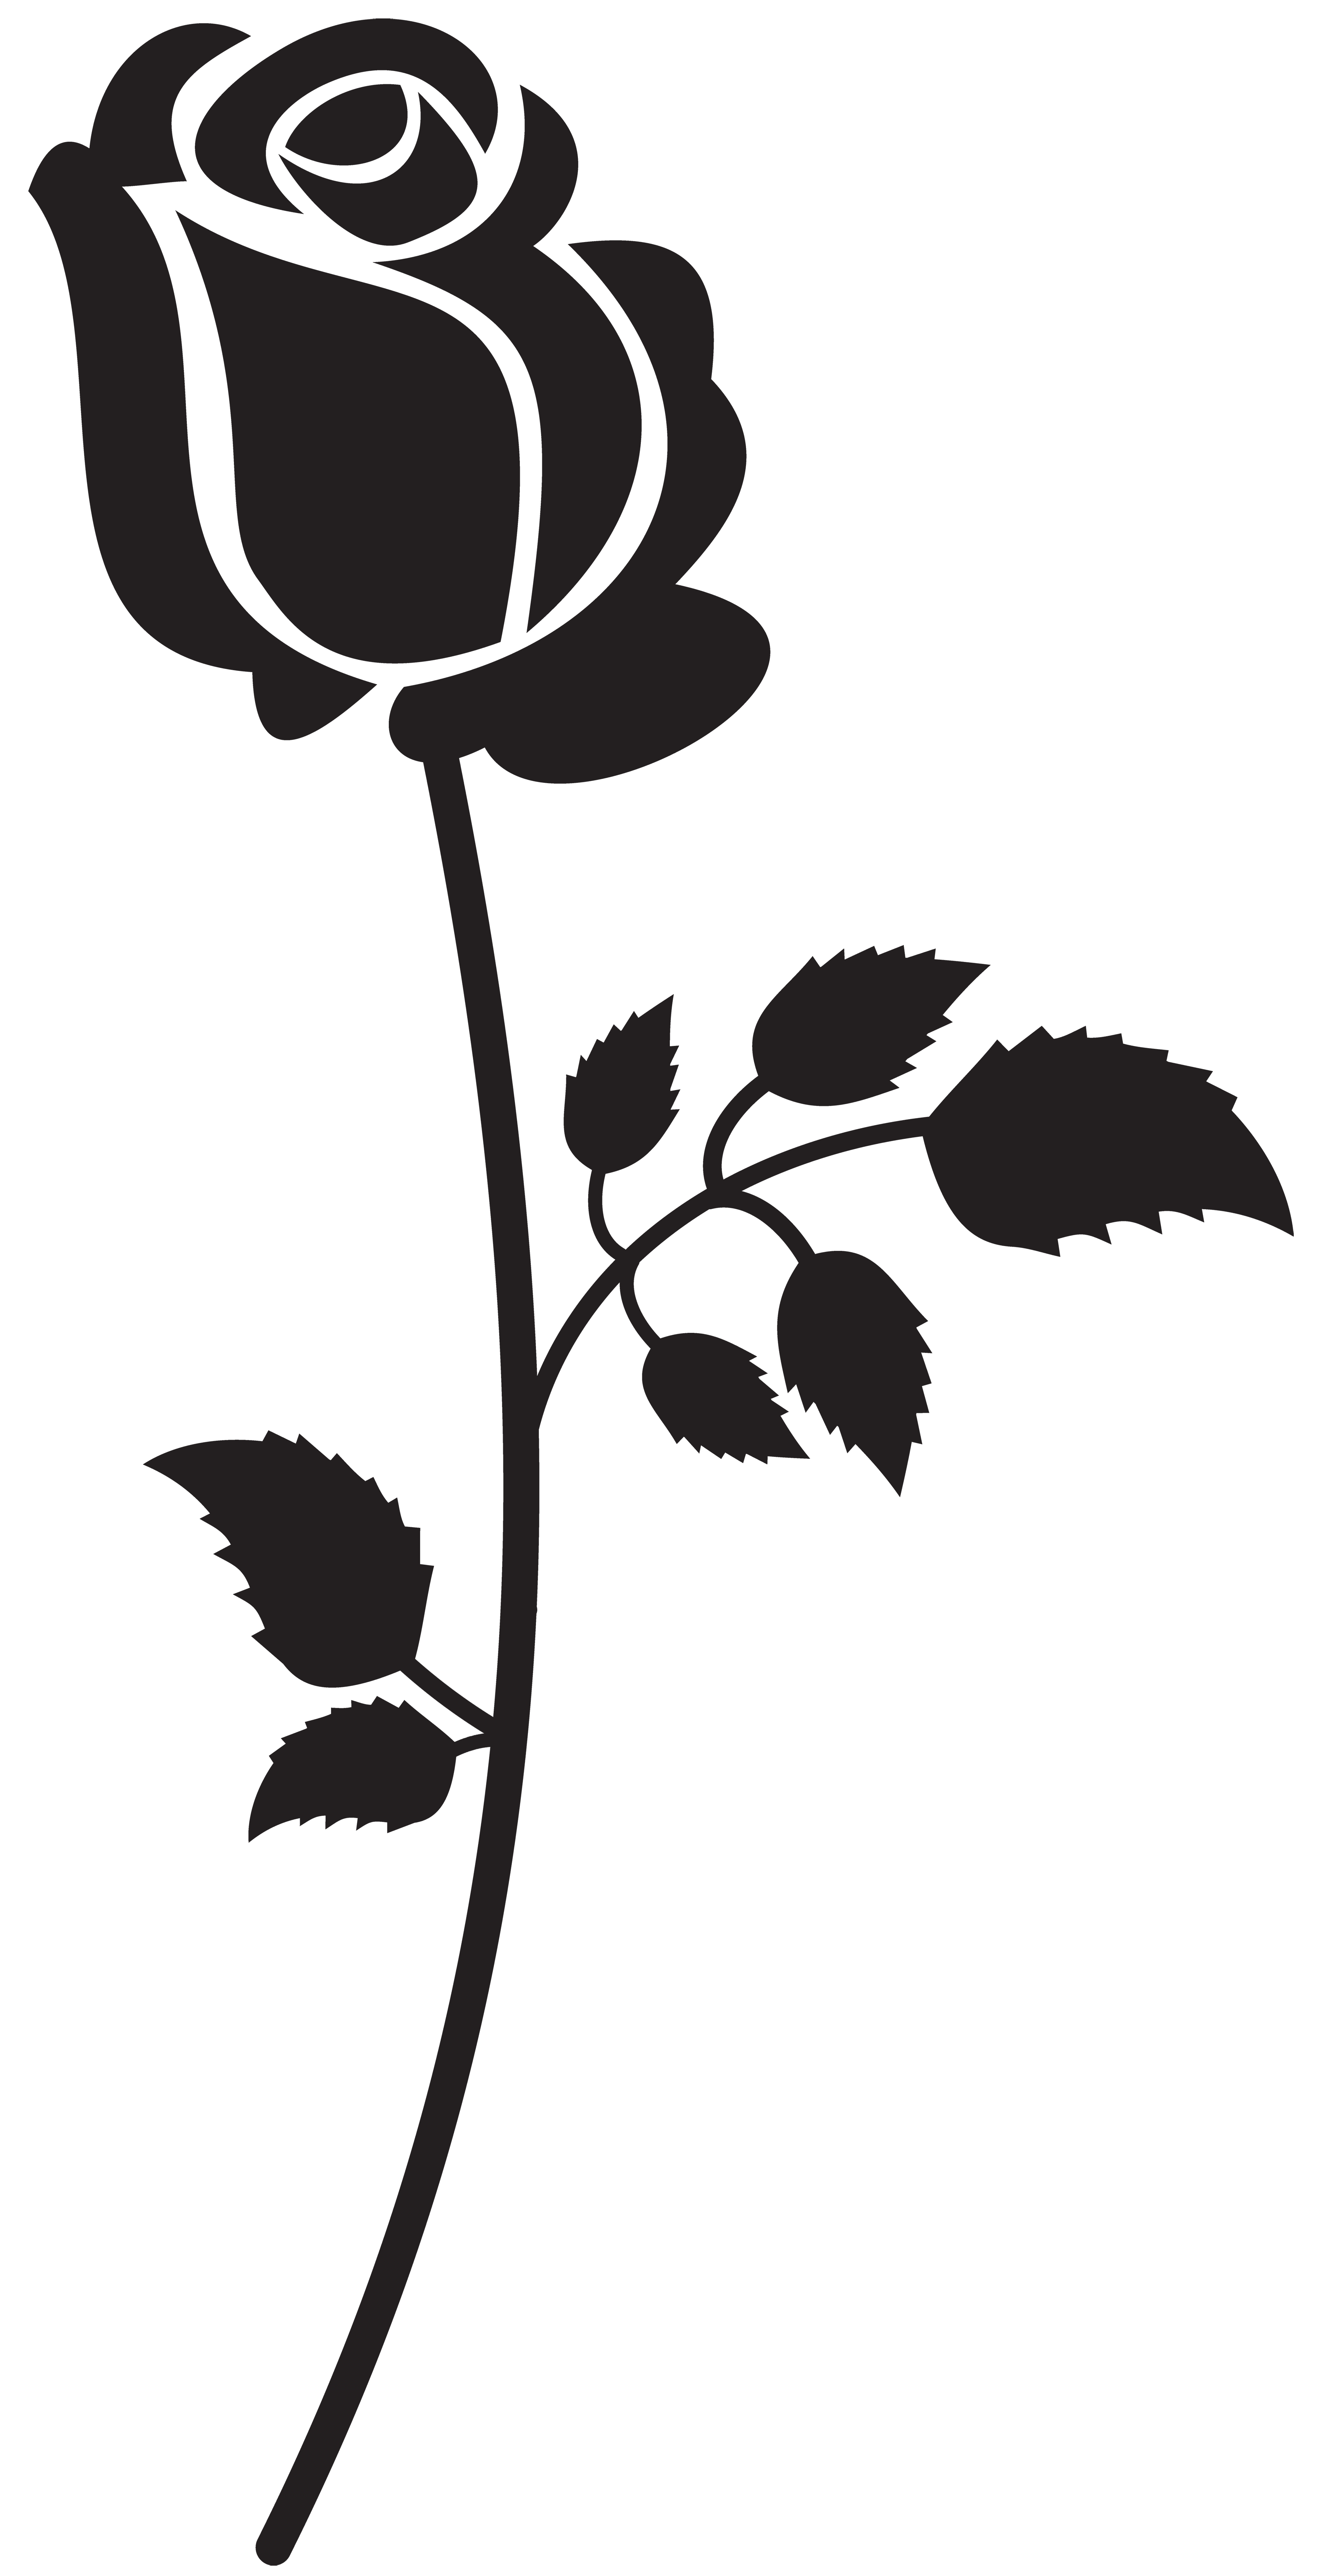 Rose Silhouette PNG Clip Art Image.